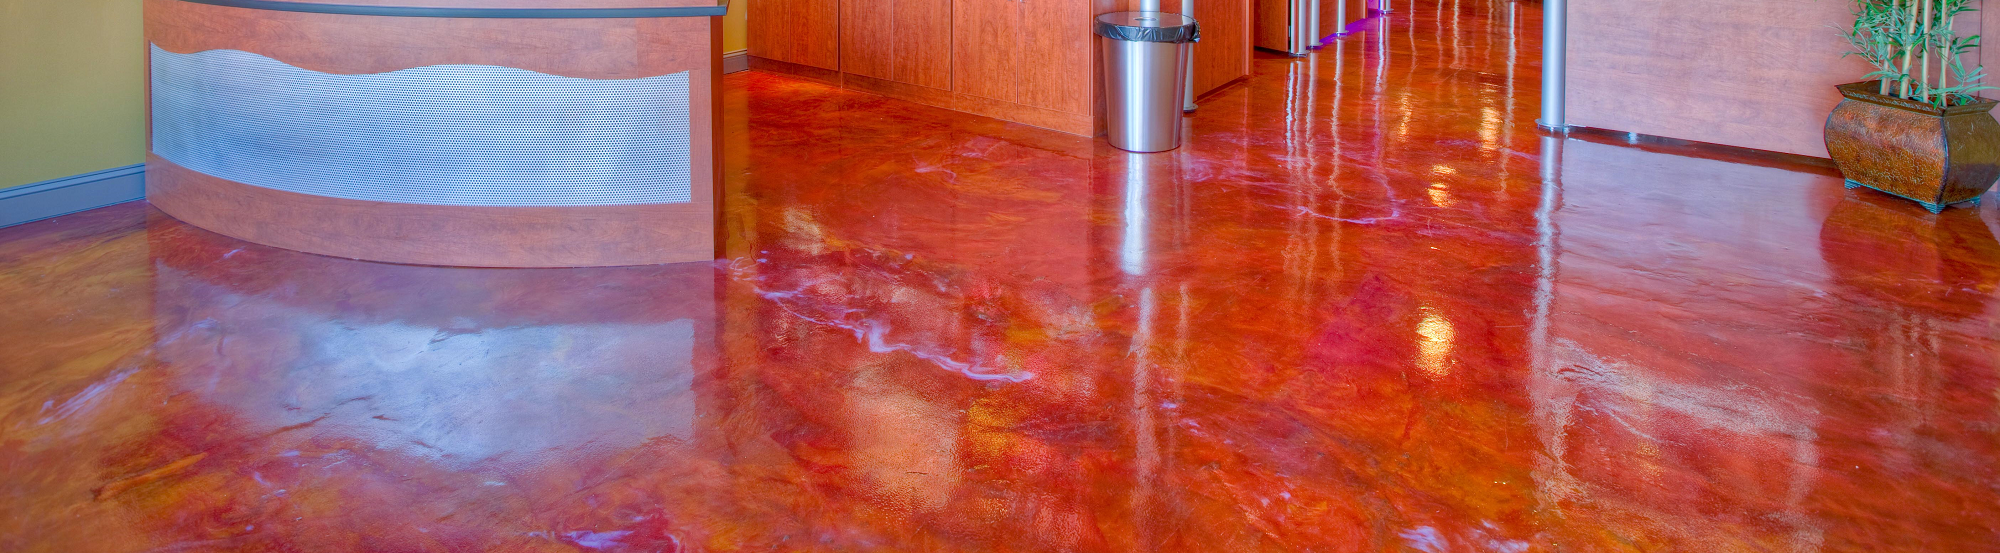 Decorative Concrete Salon Floor